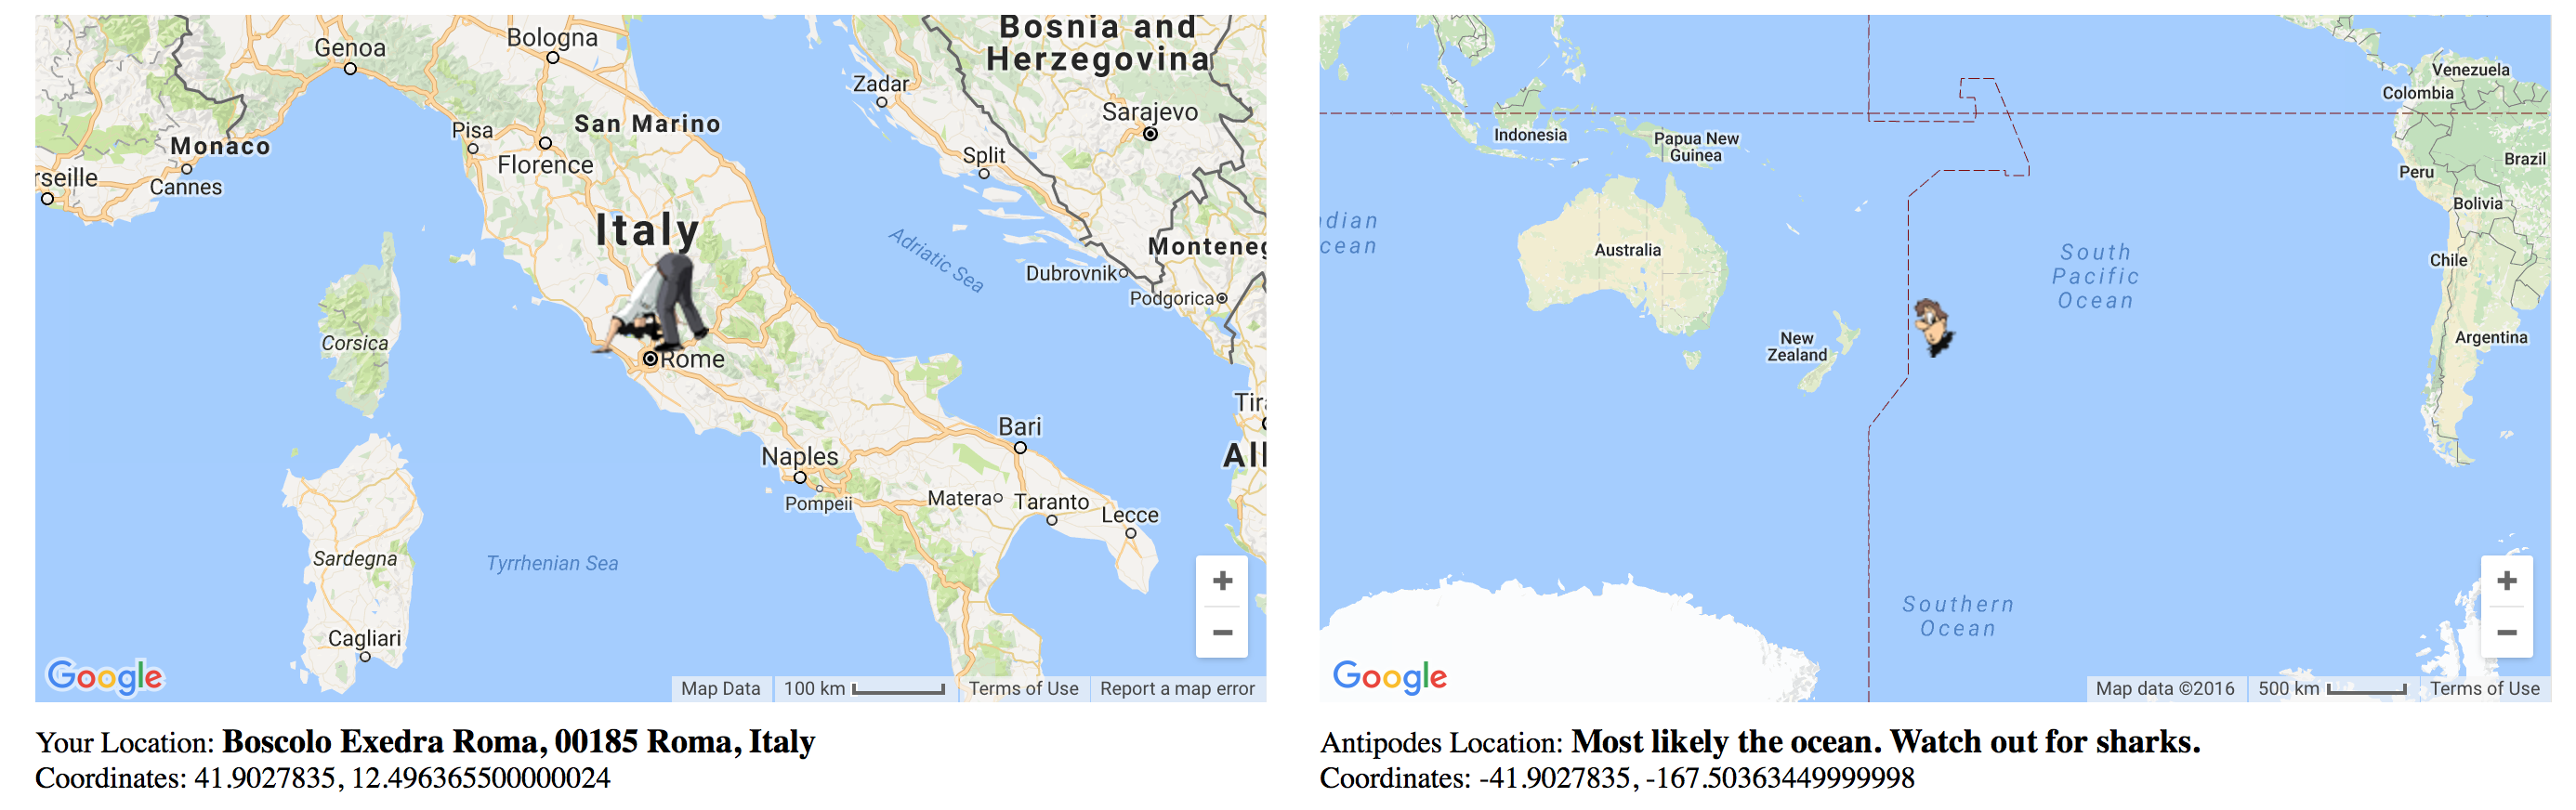 Rome to Antipodes near New Zealand.png